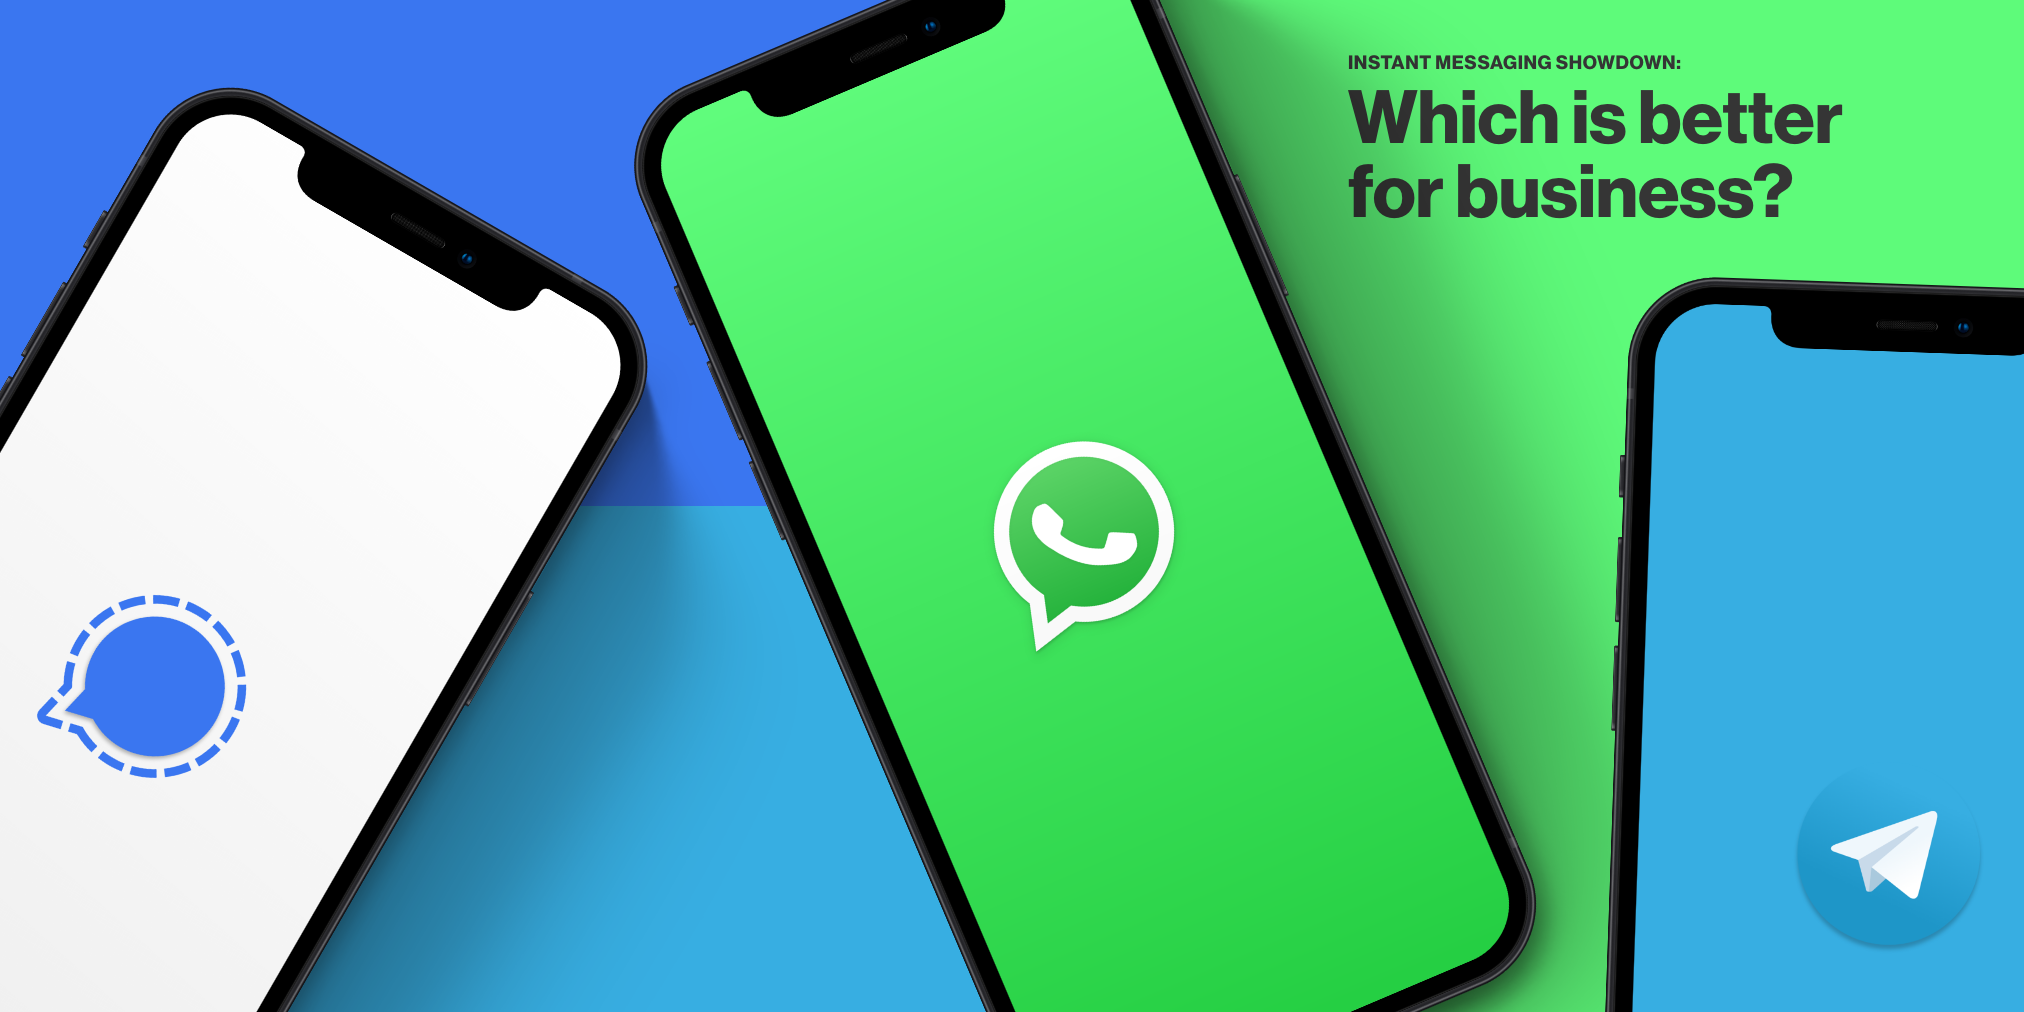 Is Signal better than WhatsApp?